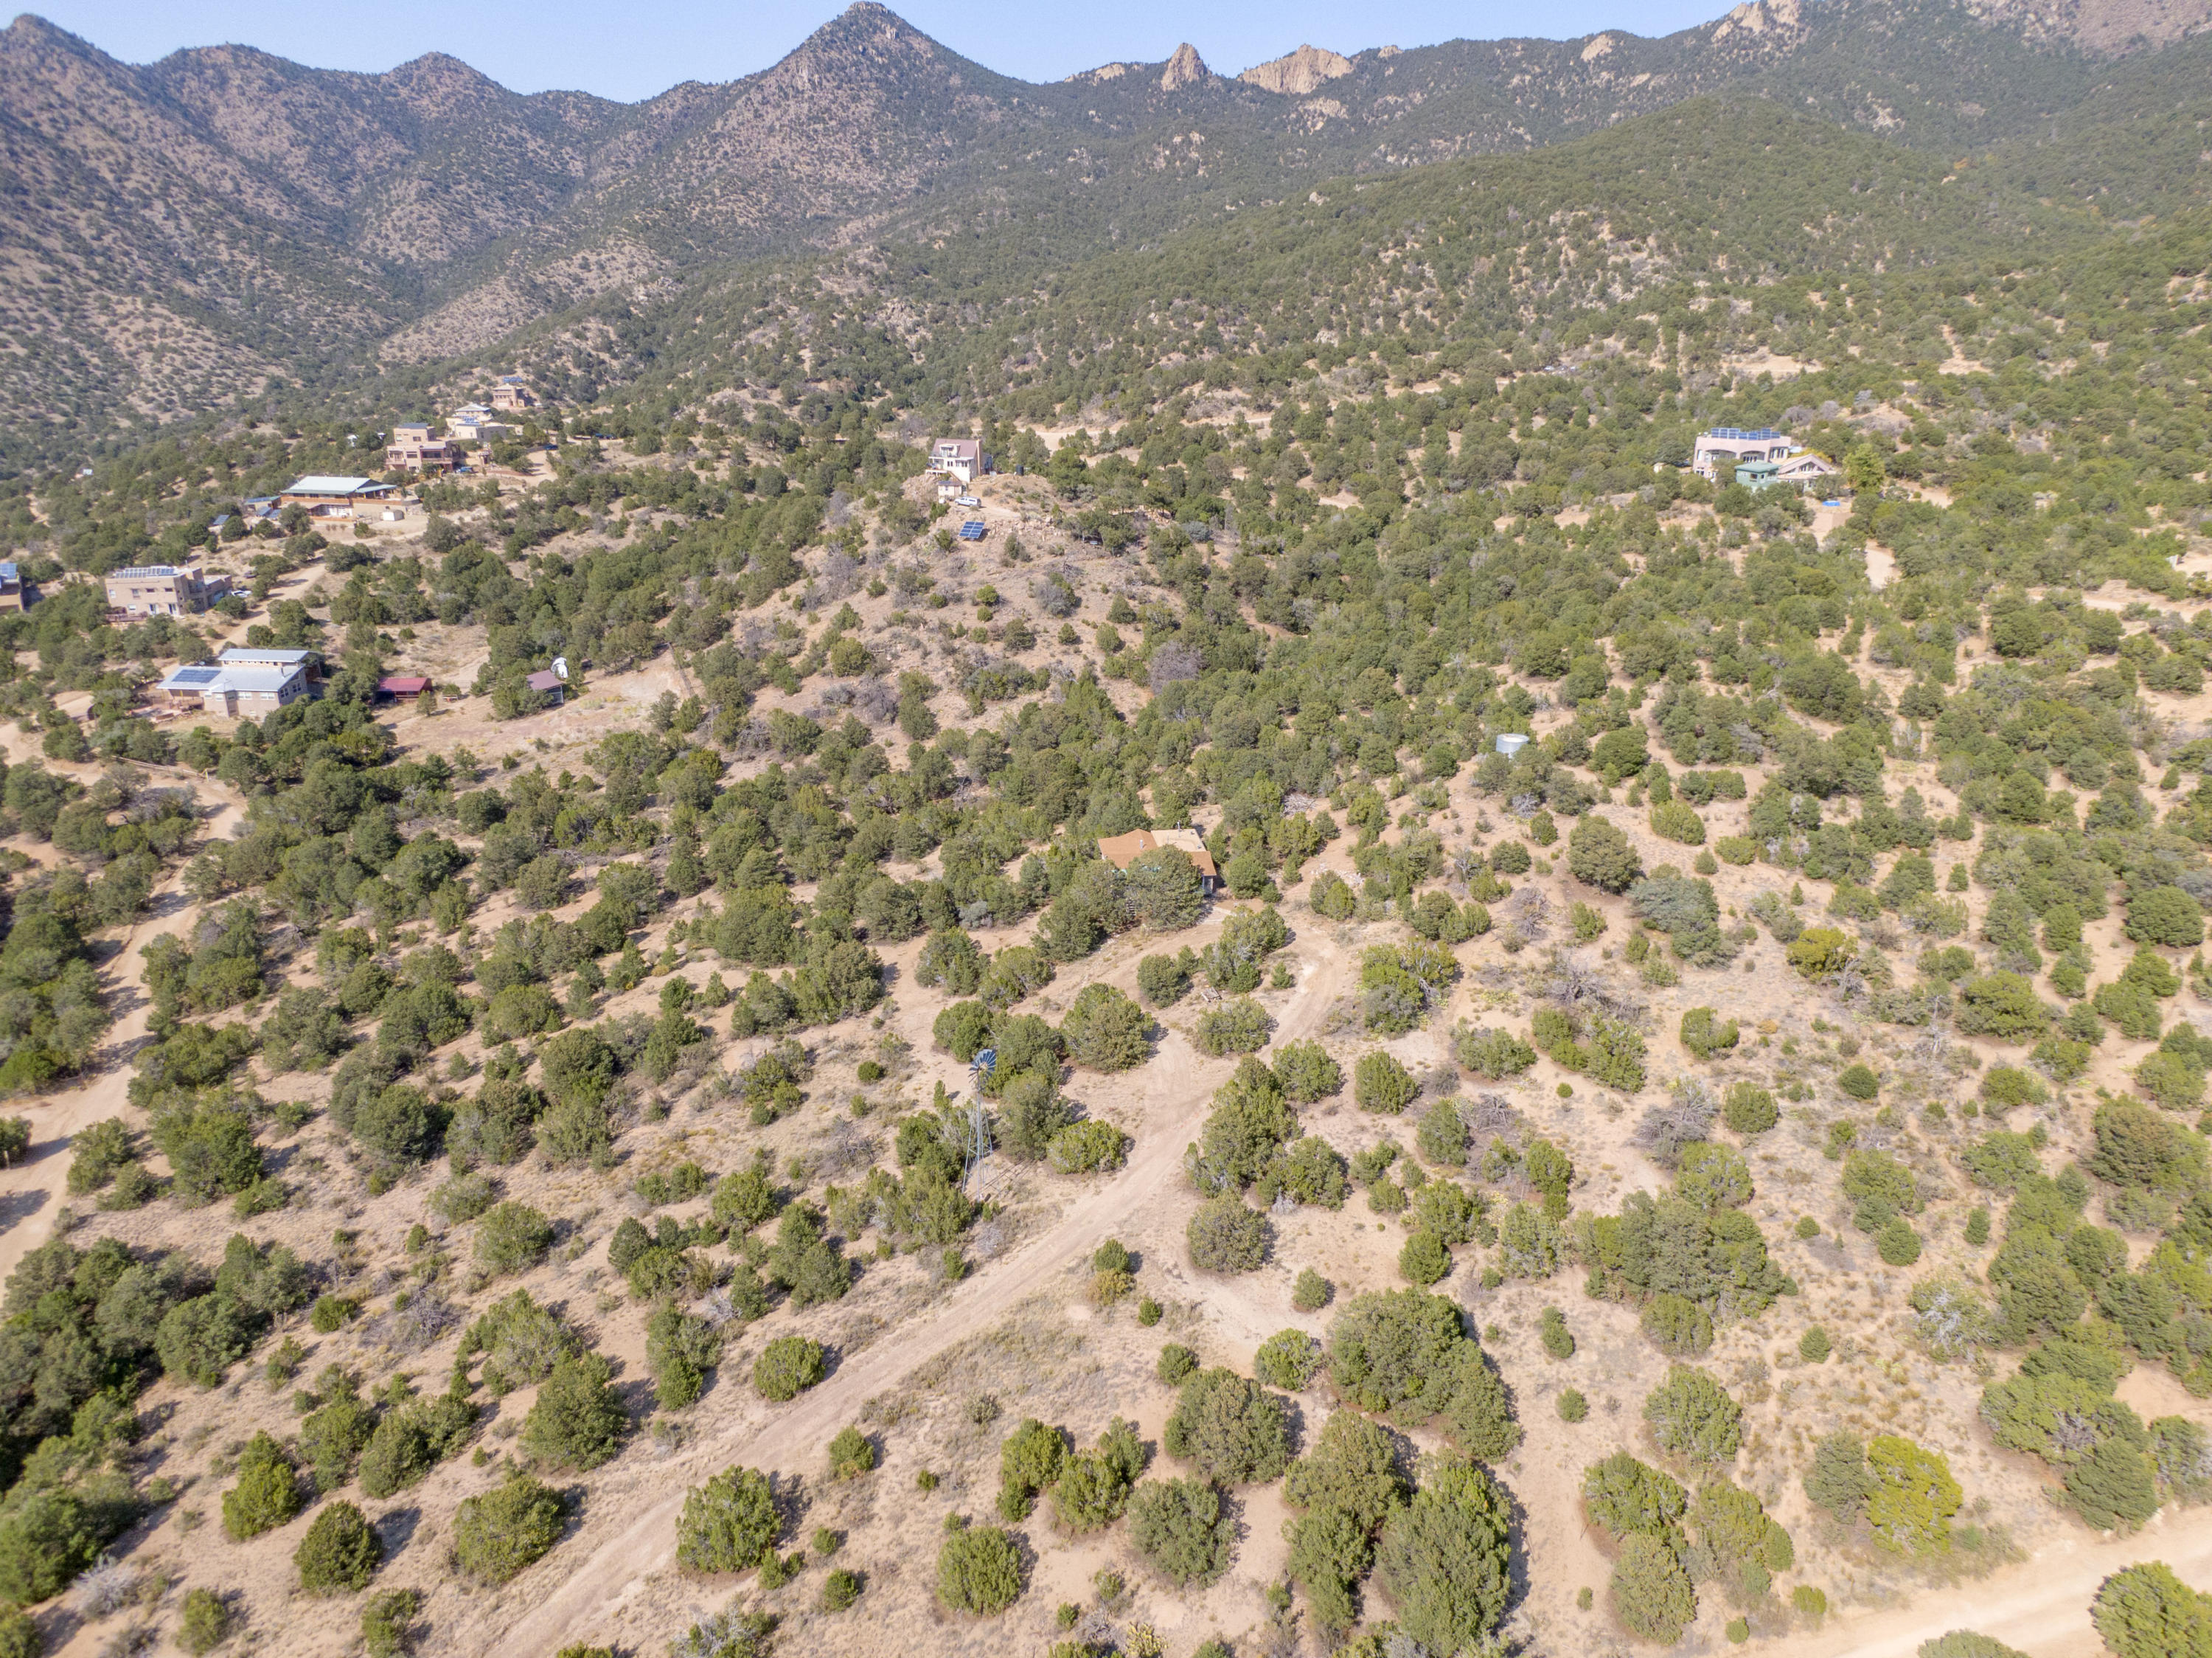 Rare opportunity to own 10+ acres of land near the la luz trail. Properties in evergreen hills are off the grid. Property is fully fenced and has beautiful views of the mountains and city lights. Pinon trees are abundant, windmill on property. Excellent location for those who value their privacy,